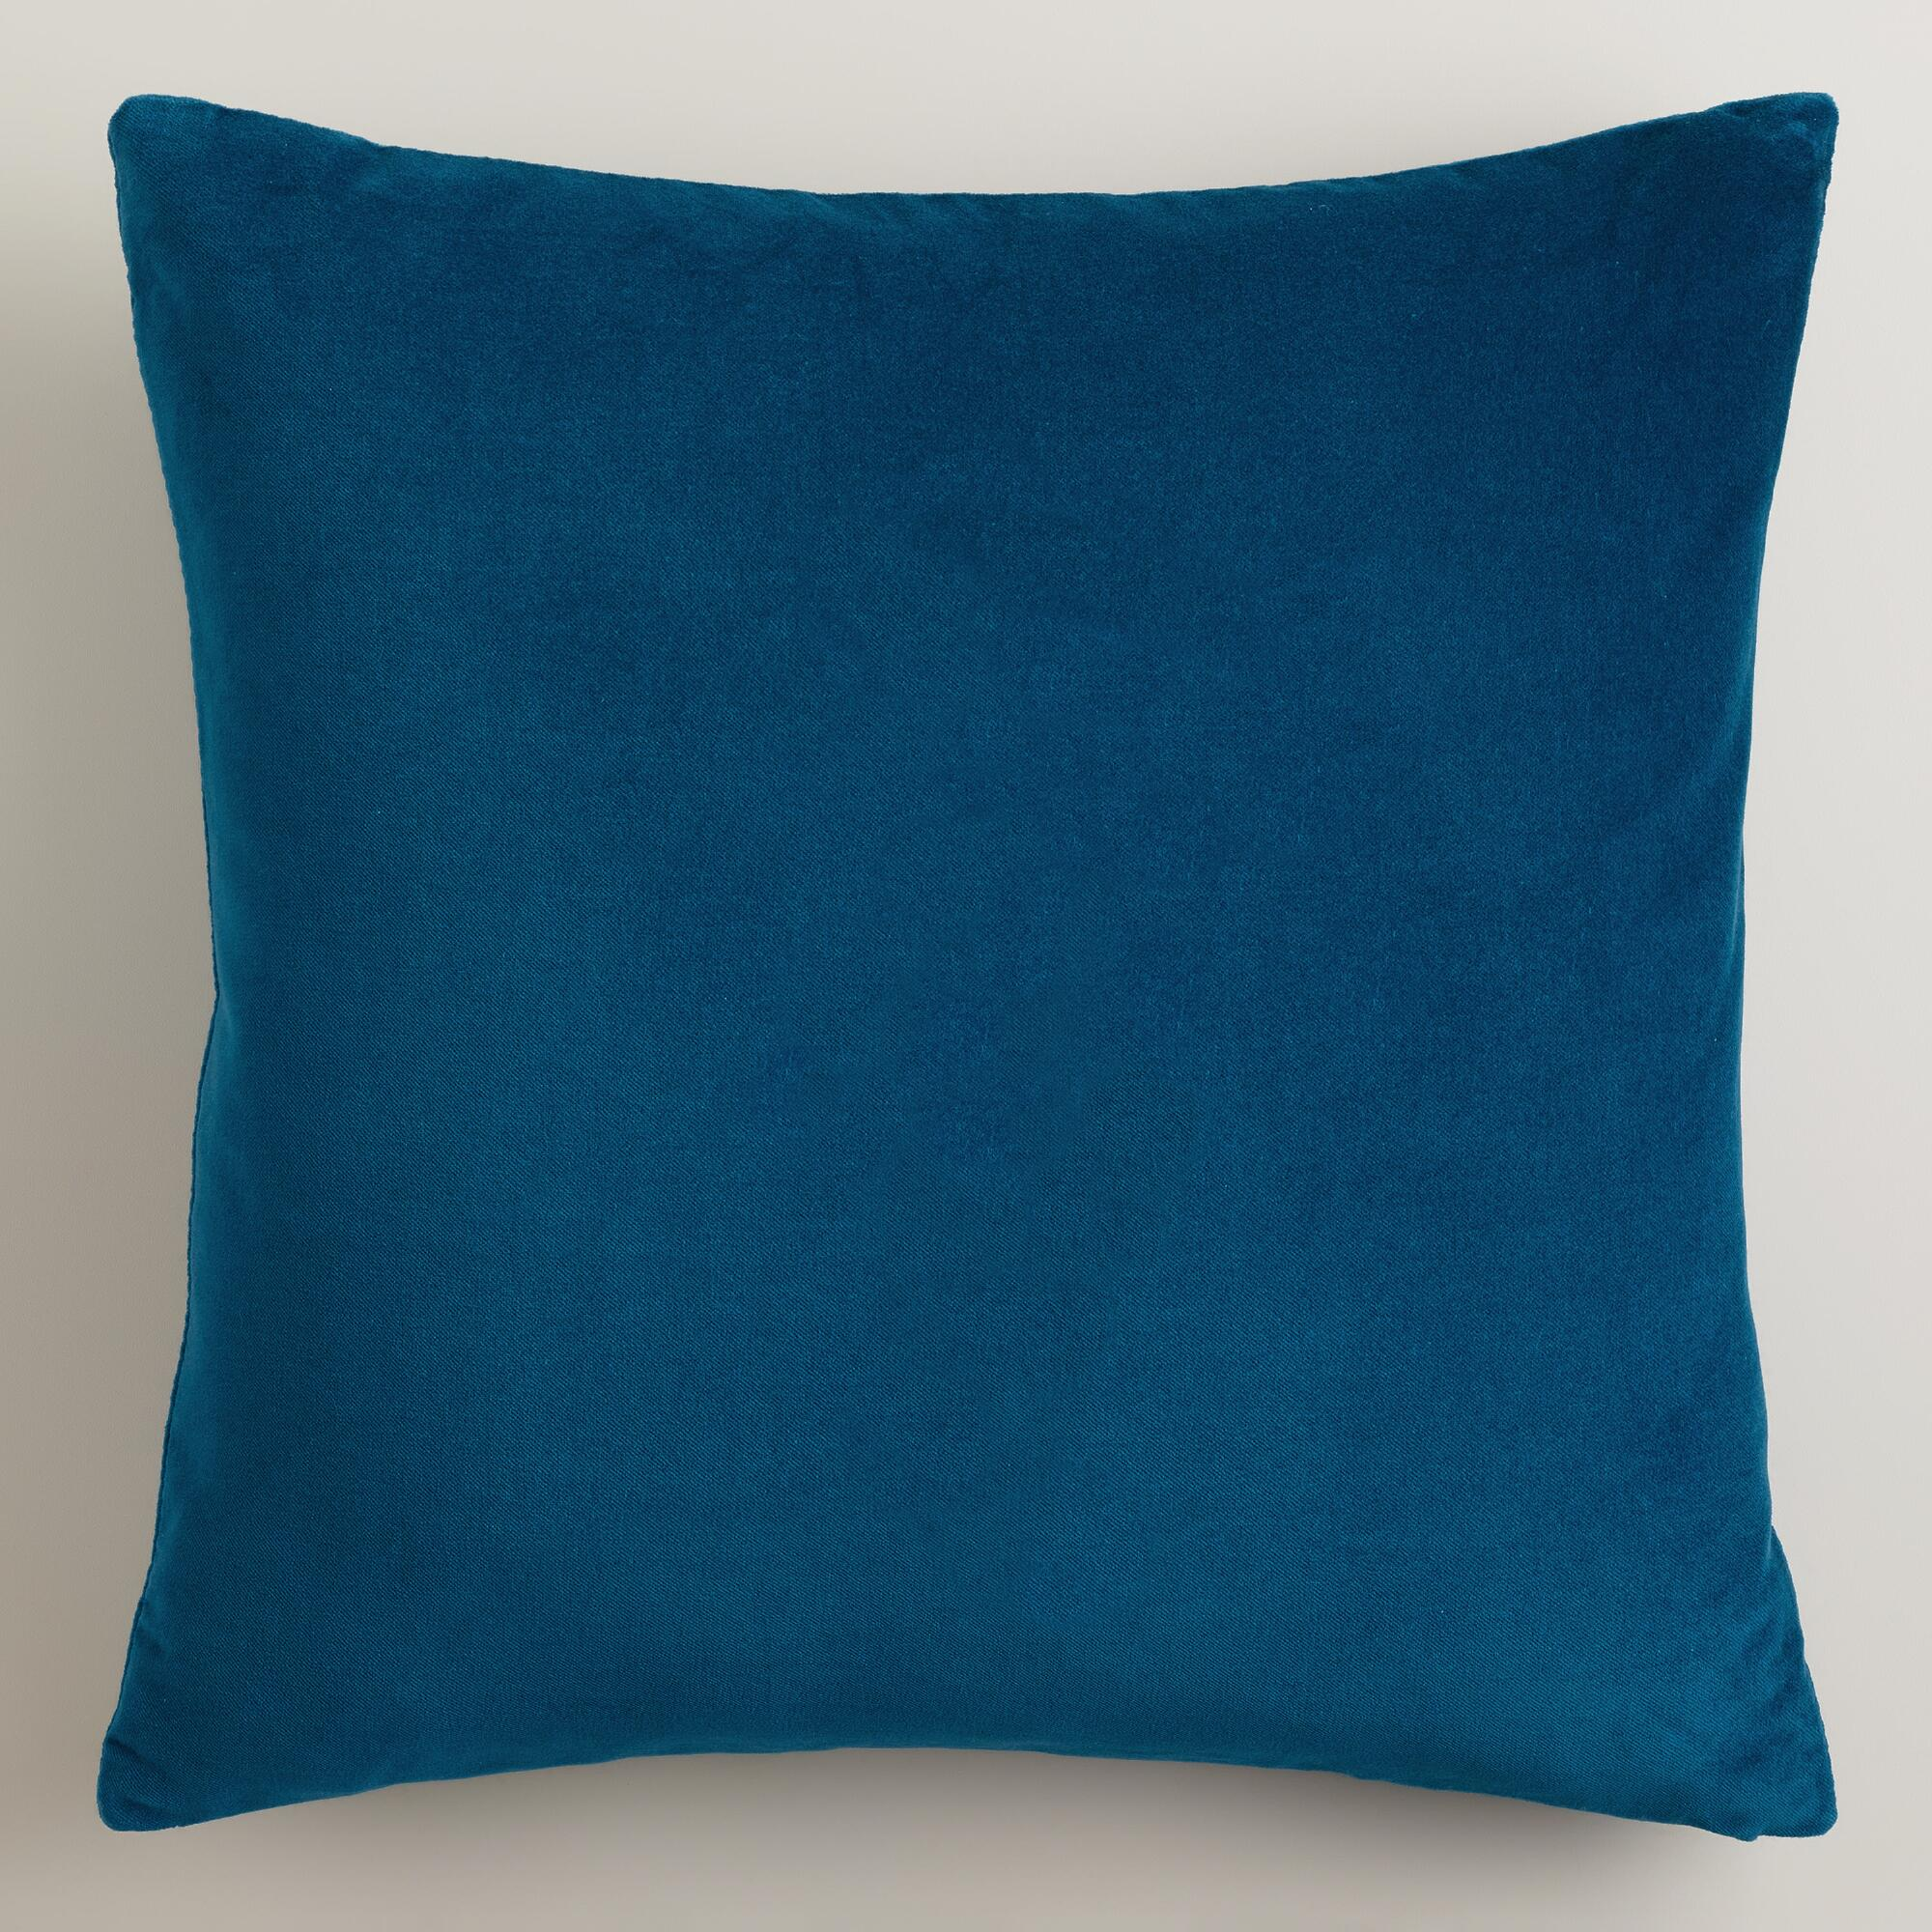 Blue Velvet Throw Pillows : Night Blue Velvet Throw Pillows World Market